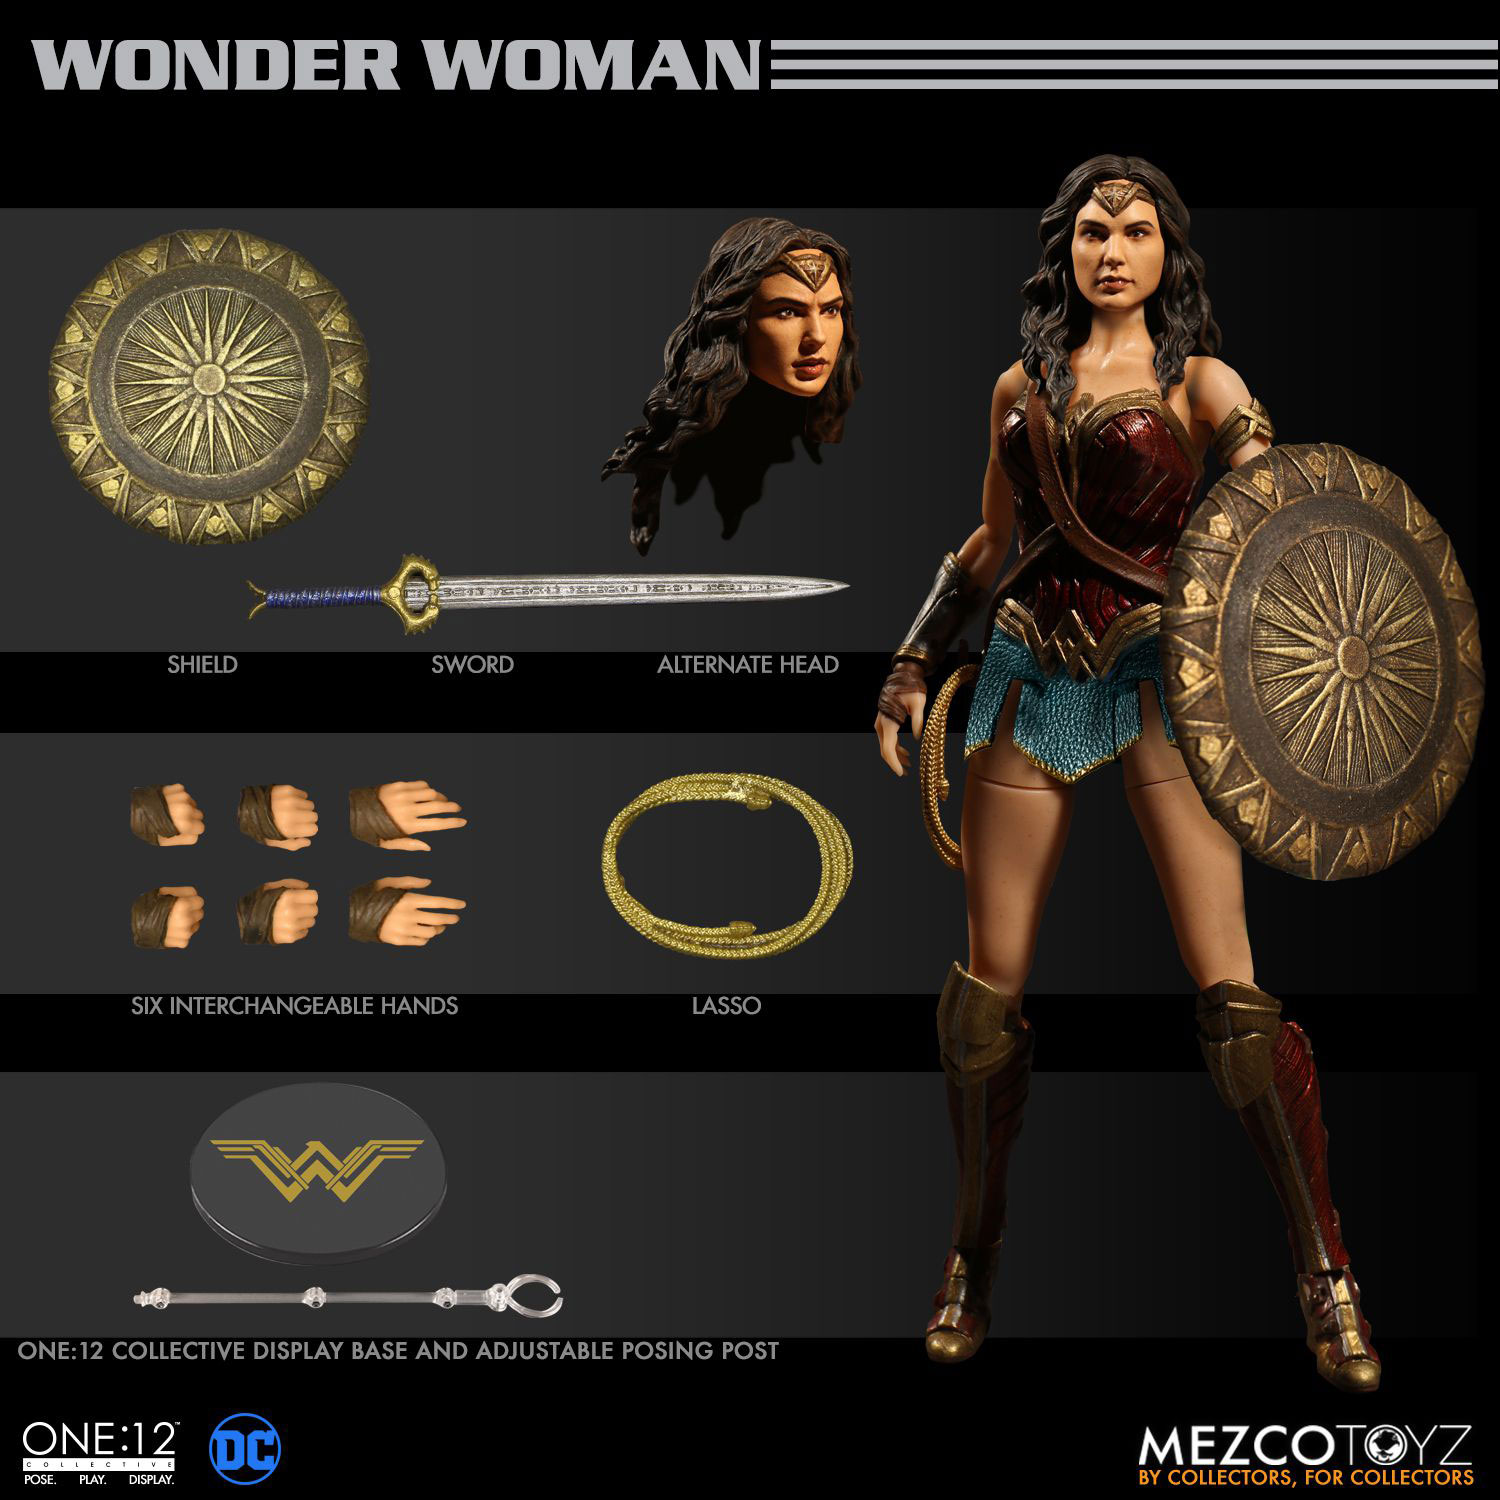 wonder-woman-movie-one-12-collective-figure-mezco-toyz